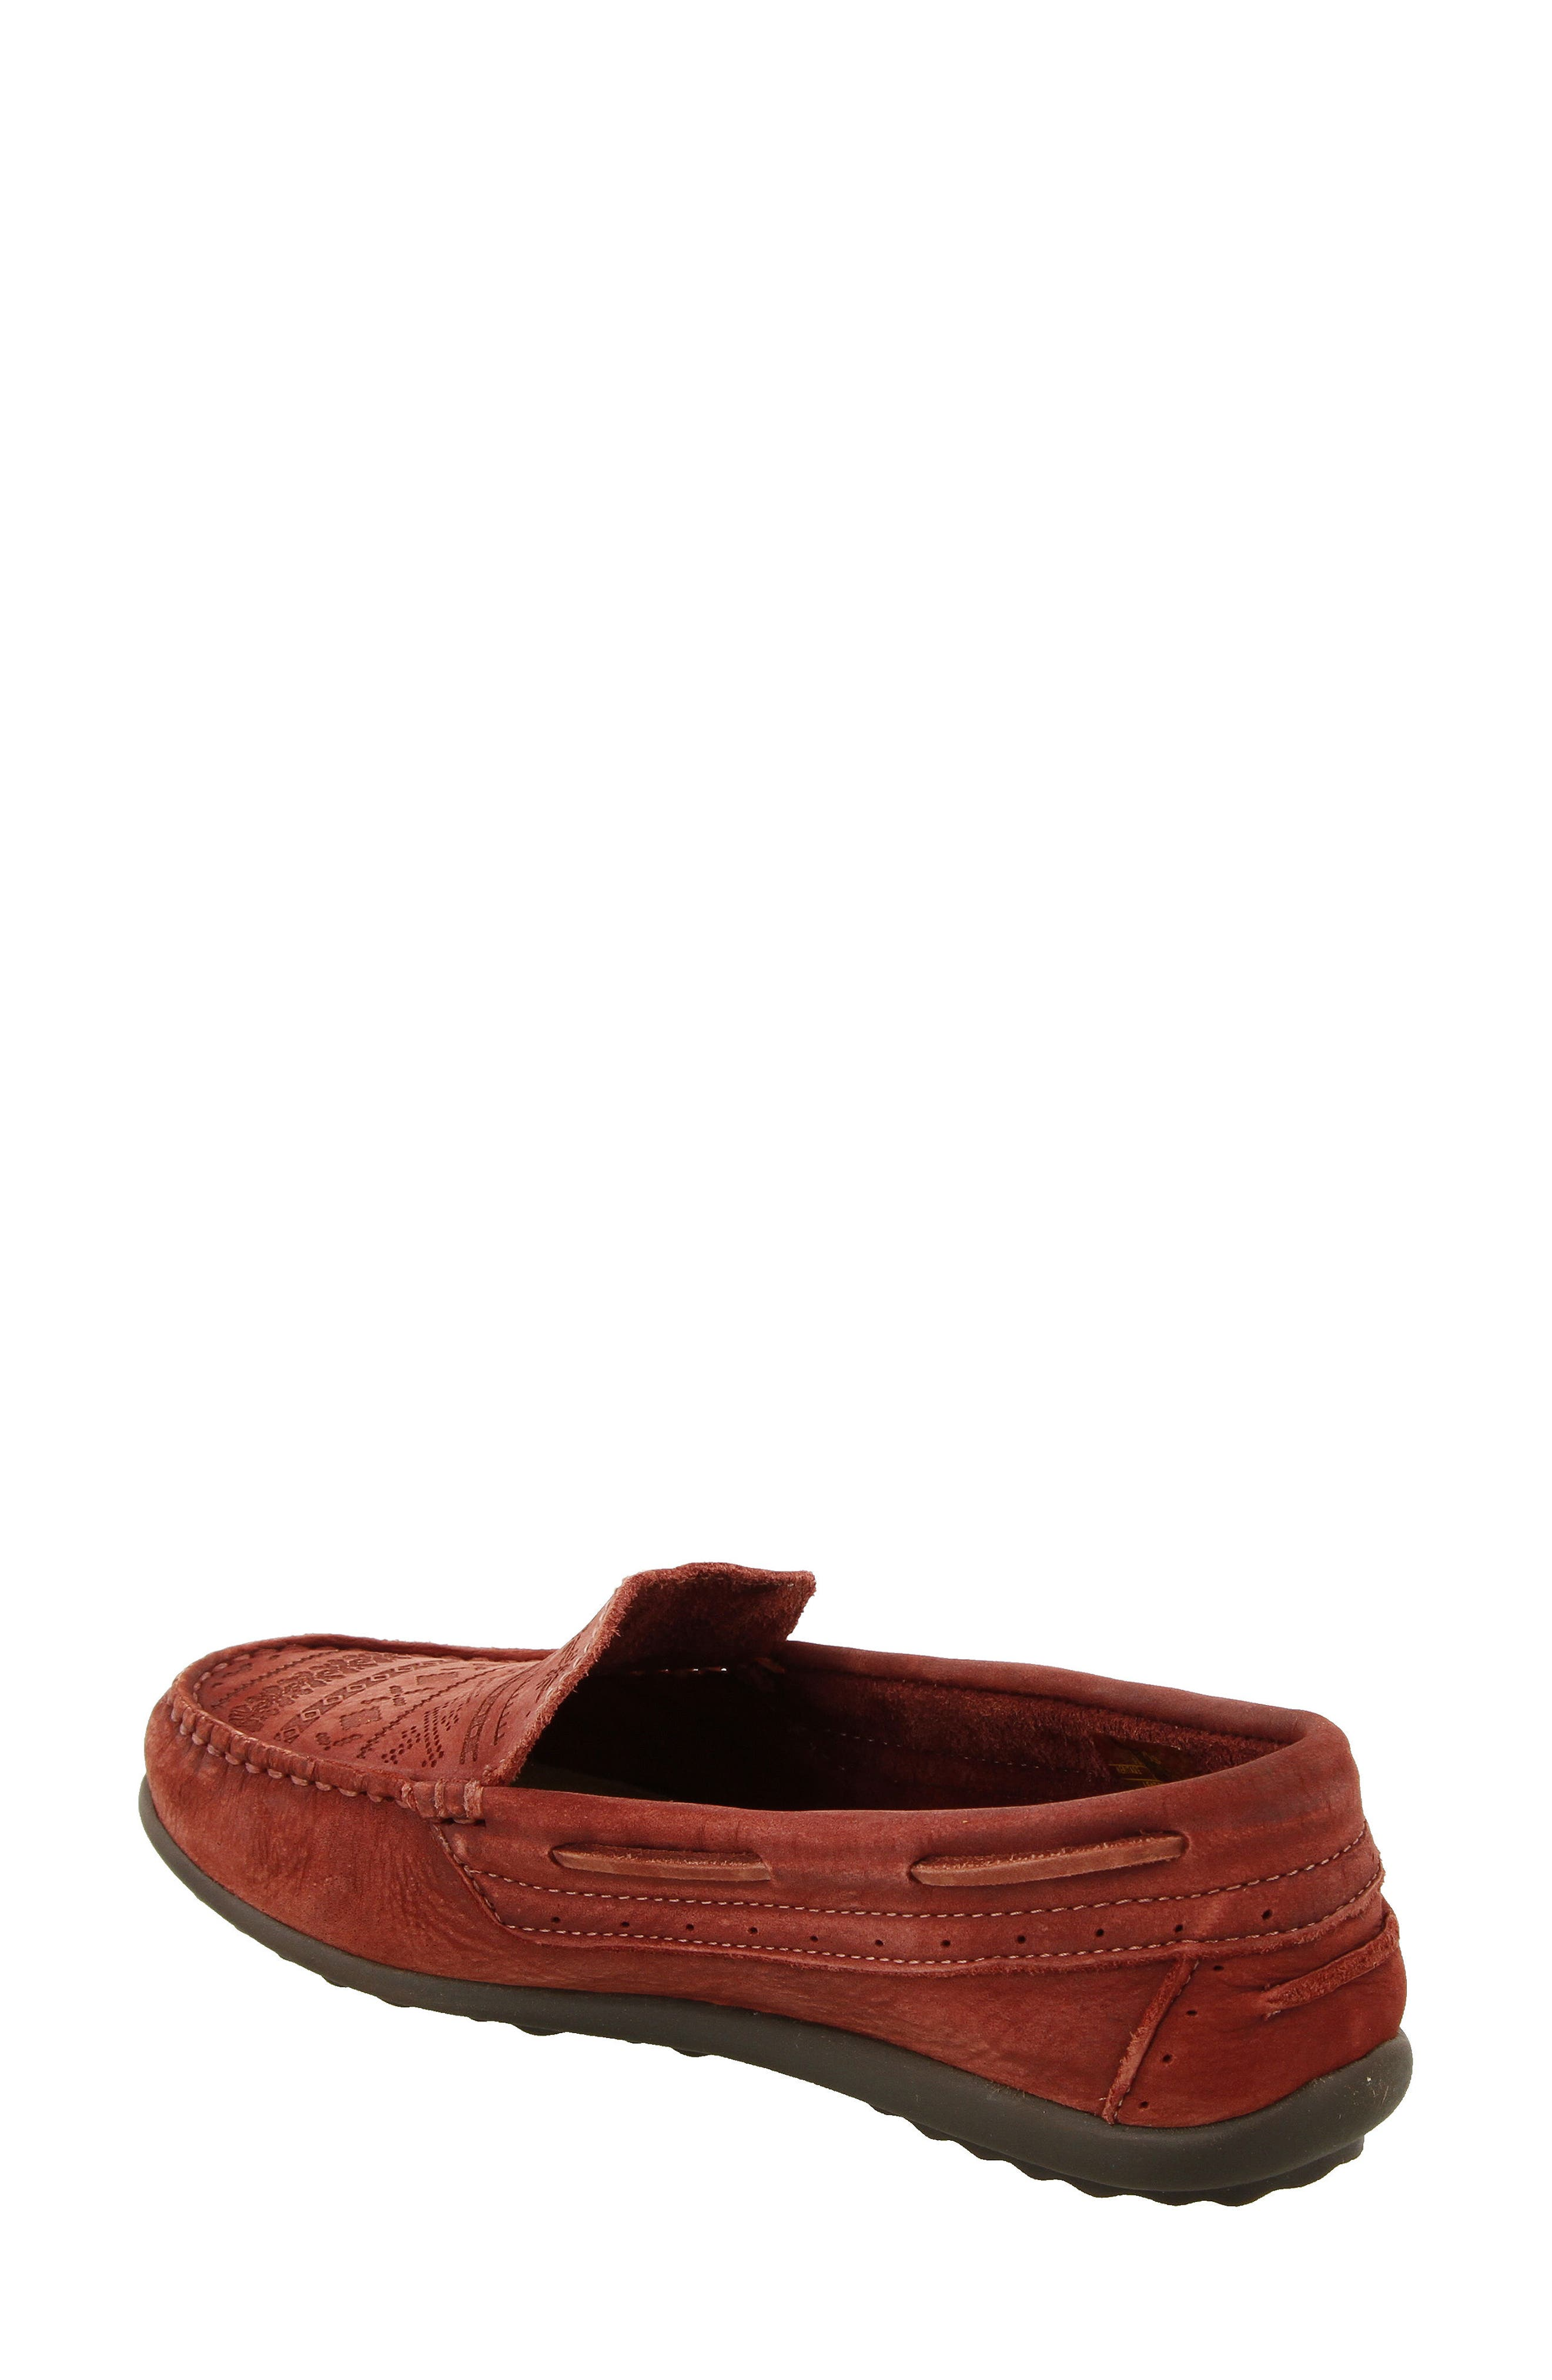 Heritage Moccasin Flat,                             Alternate thumbnail 2, color,                             Spice Red Leather